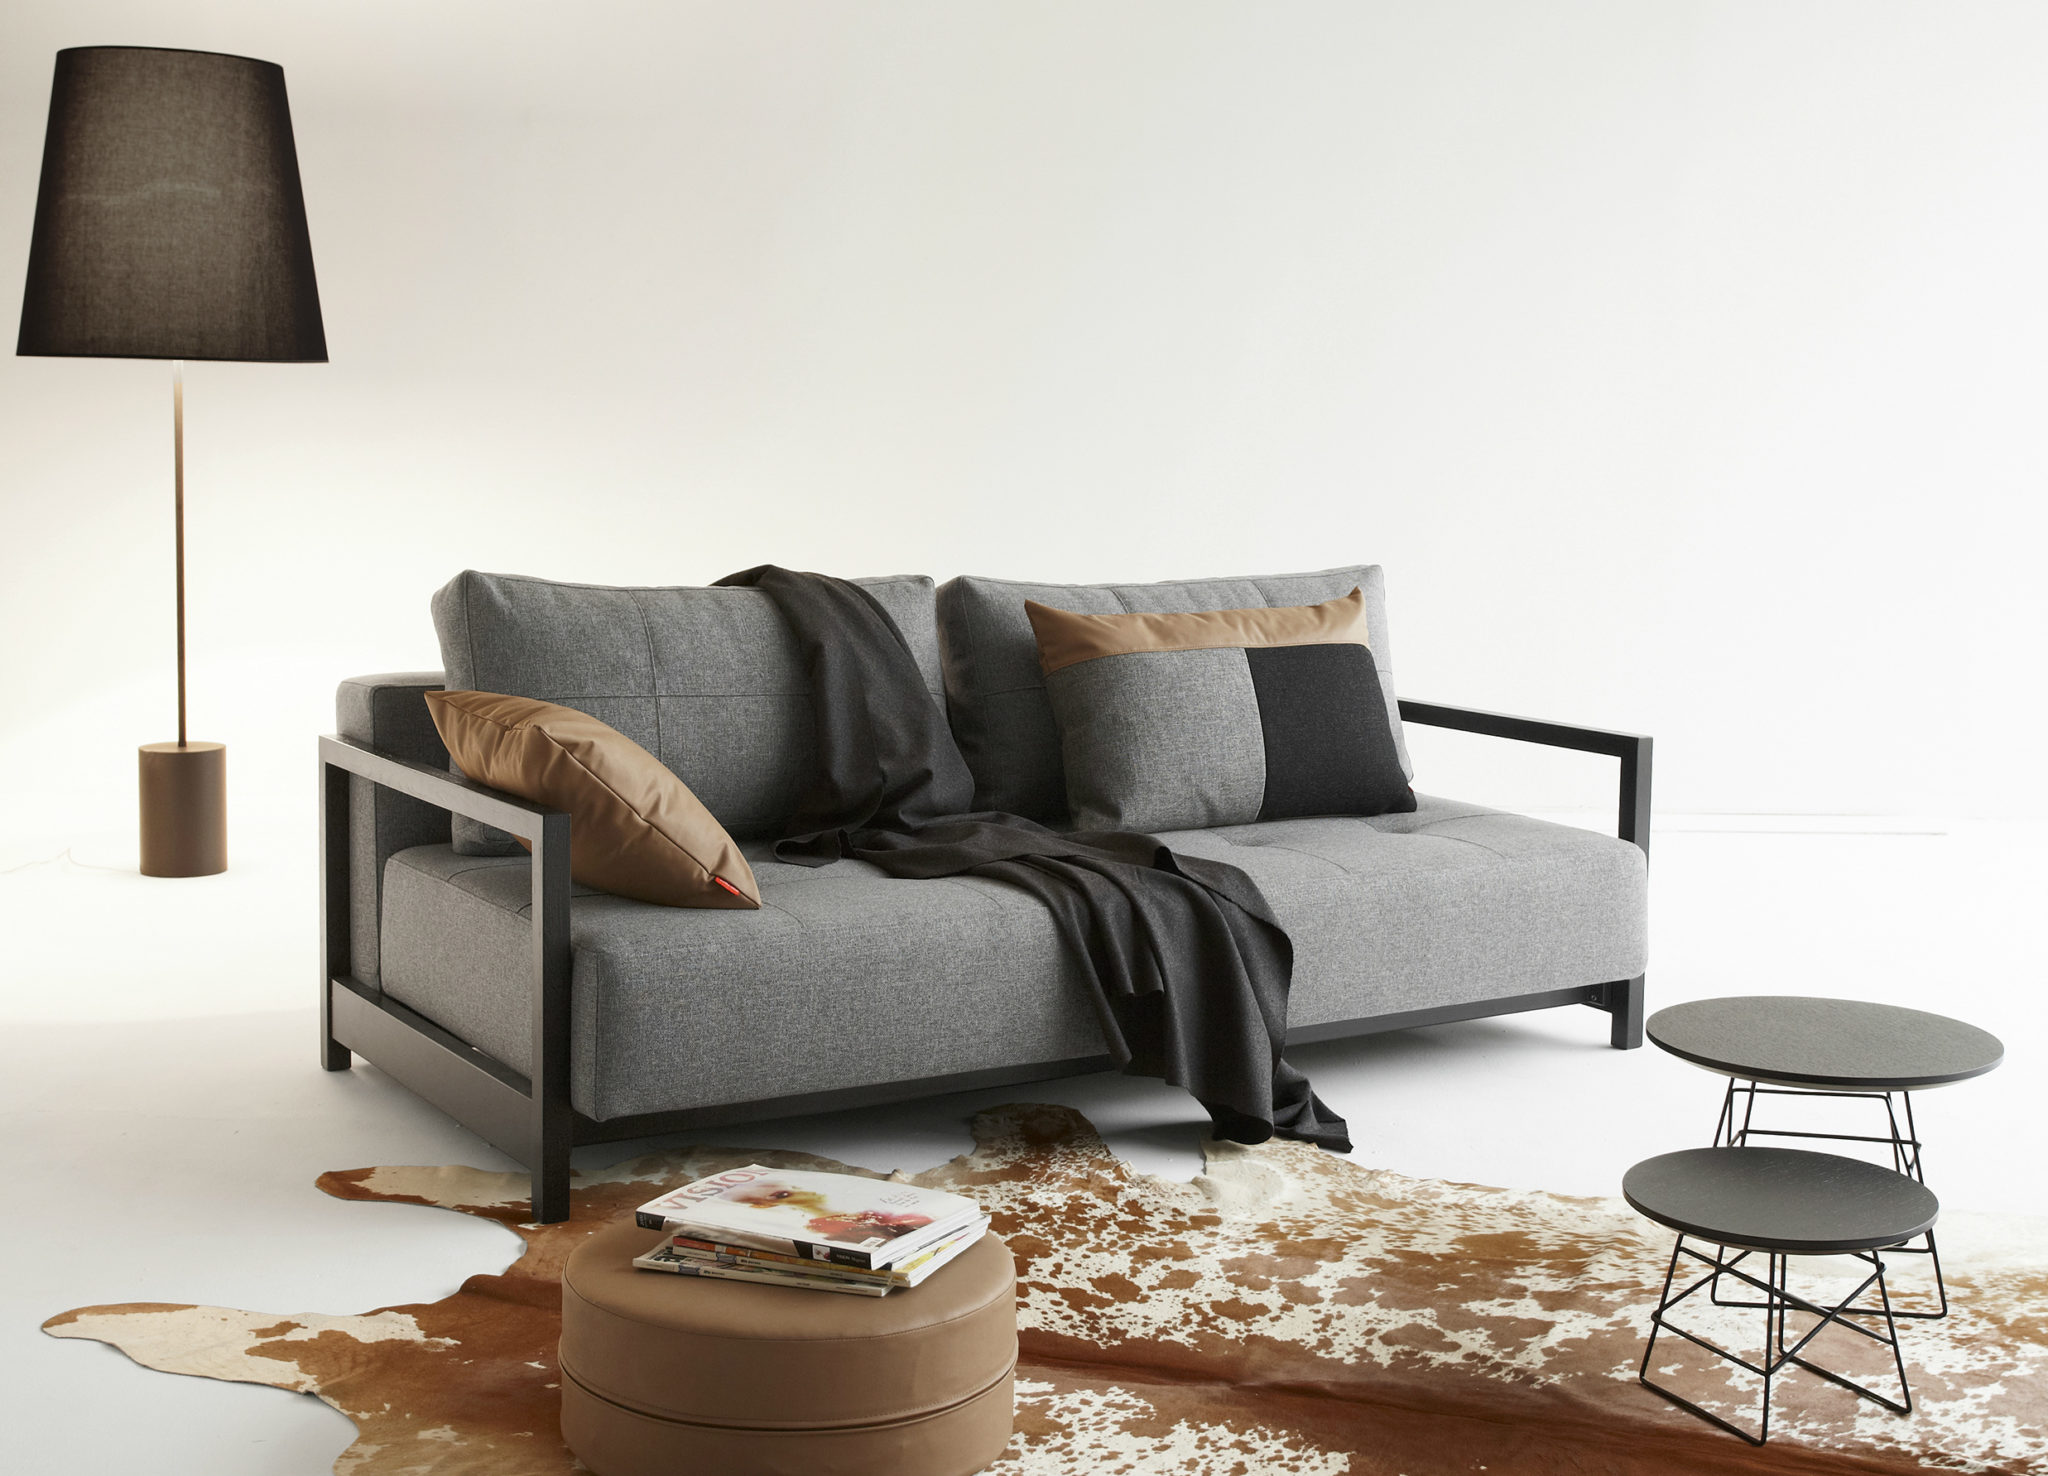 Bifrost Queen Sofa Bed - Innovation Living Melbourne